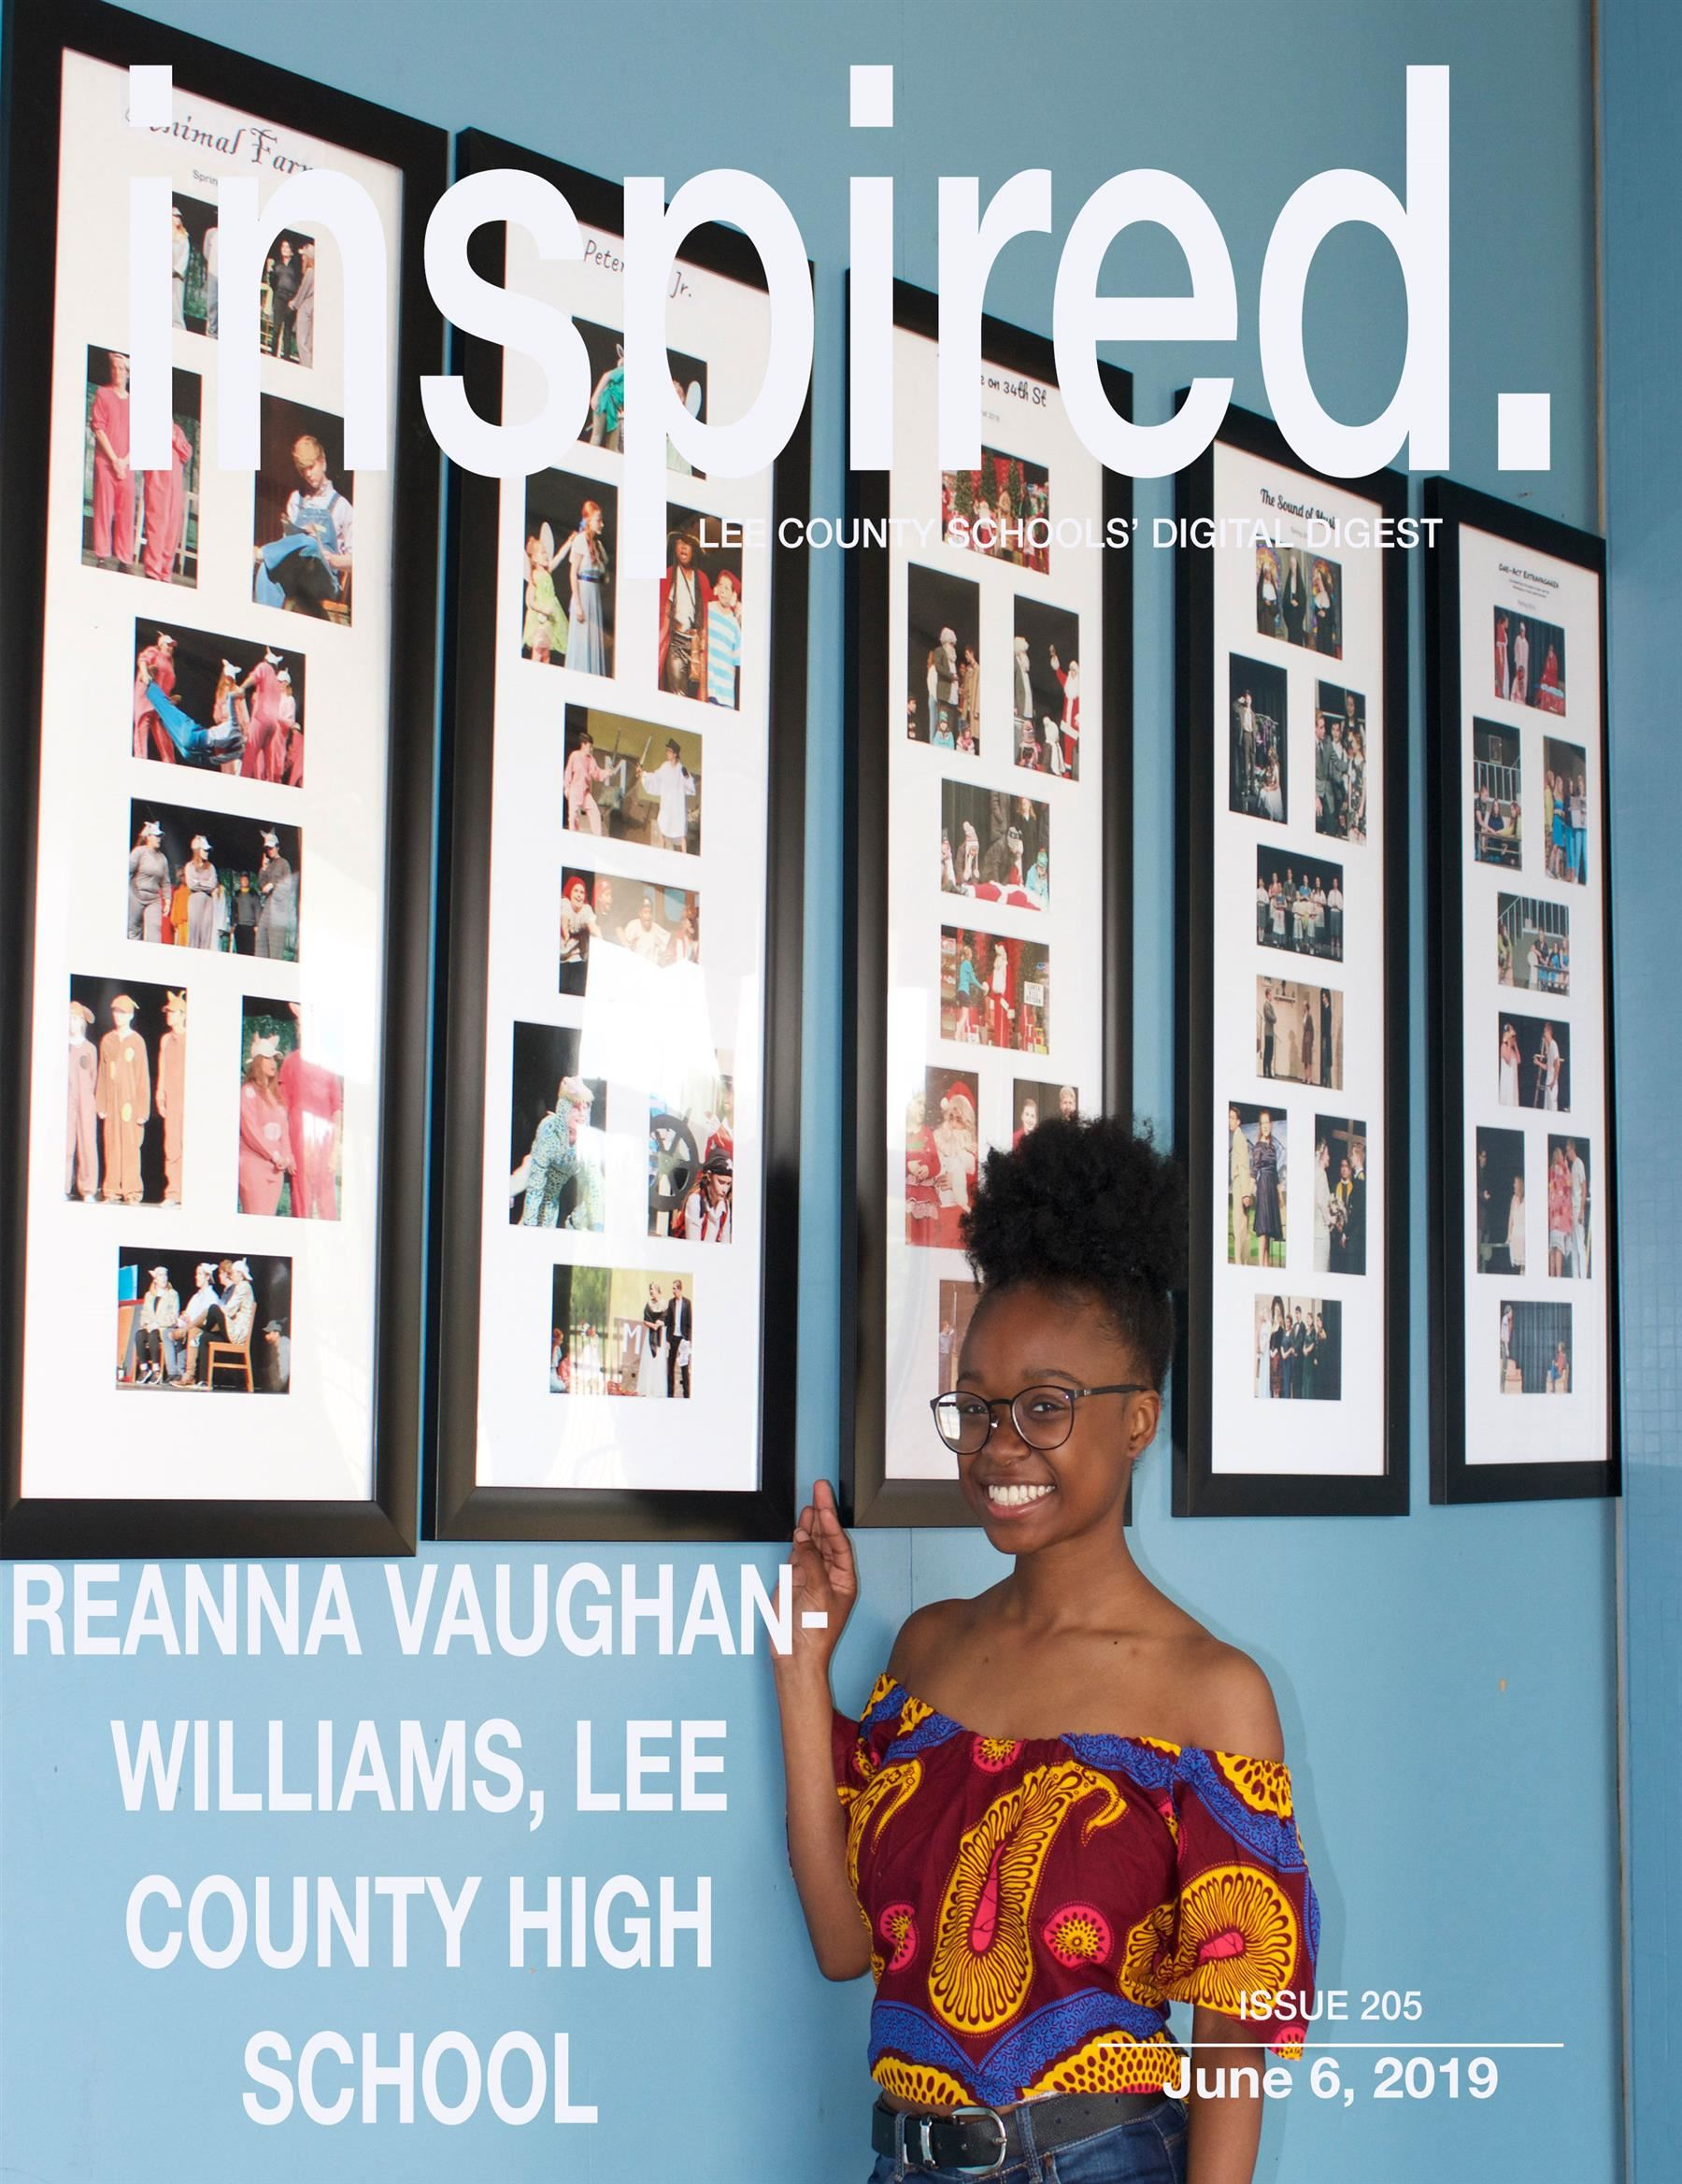 INSPIRED. Reanna Vaughan-Williams, Lee County High School